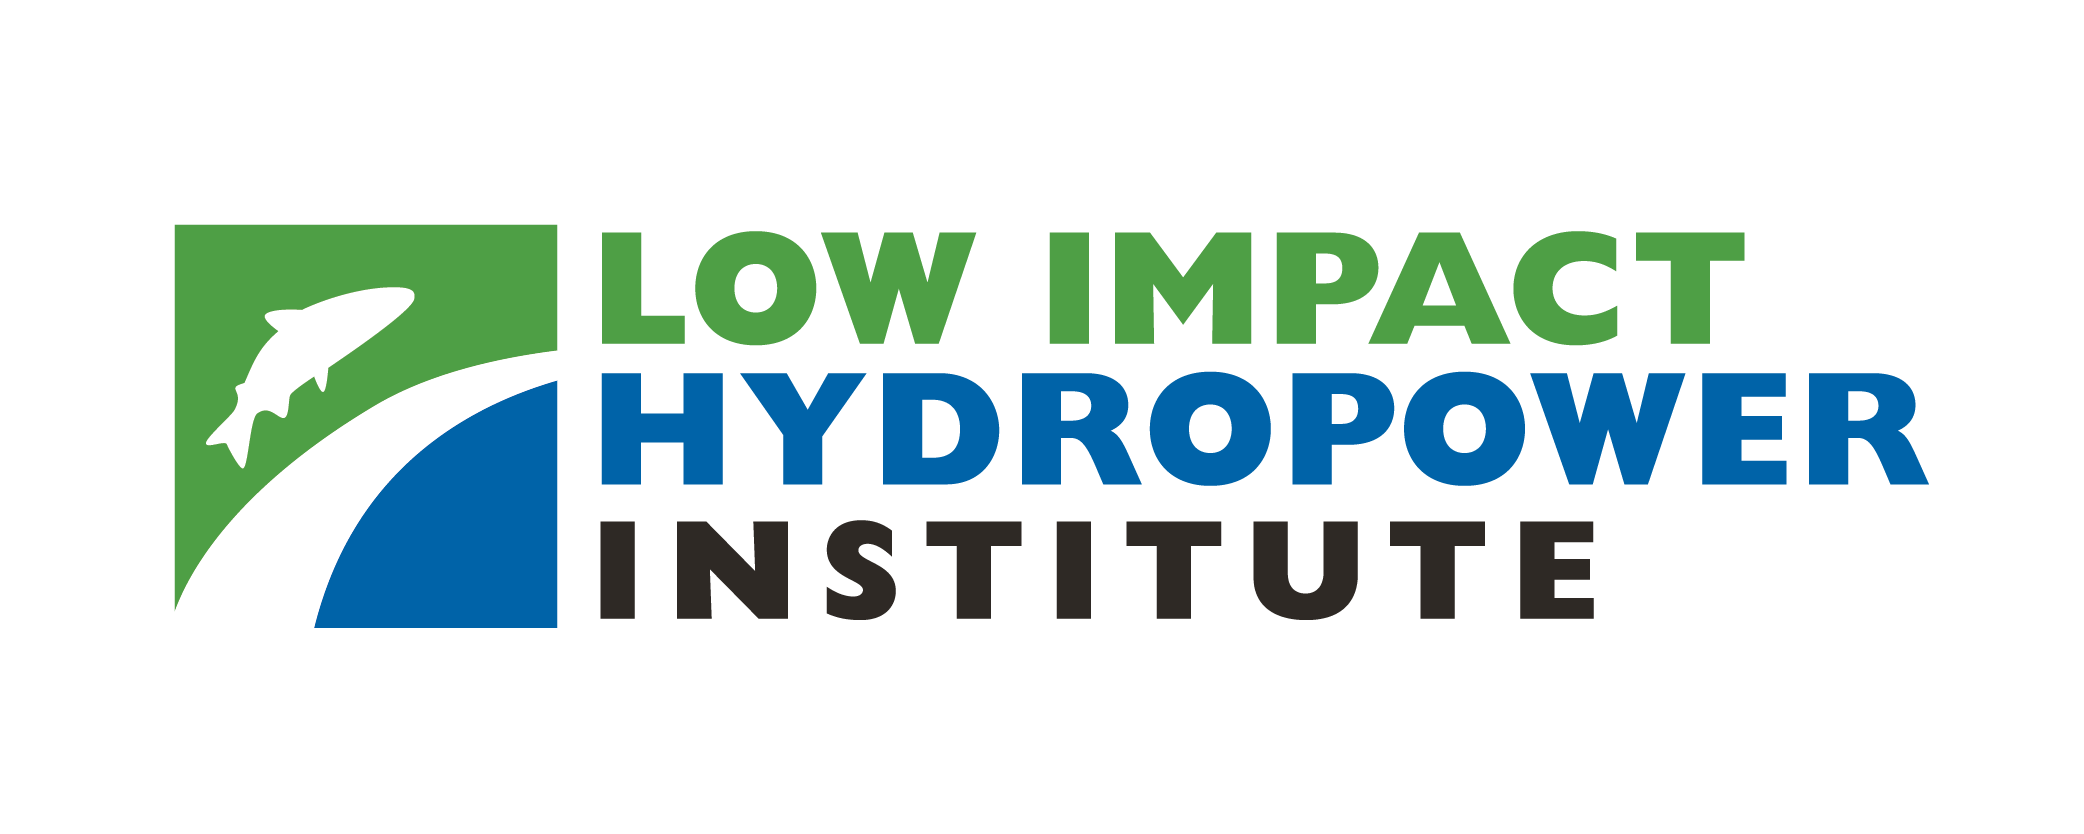 Screenshot_2020-02-07-Low-Impact-Certification-Hydropower-Certification-Low-Impact-Hydropower-Institute